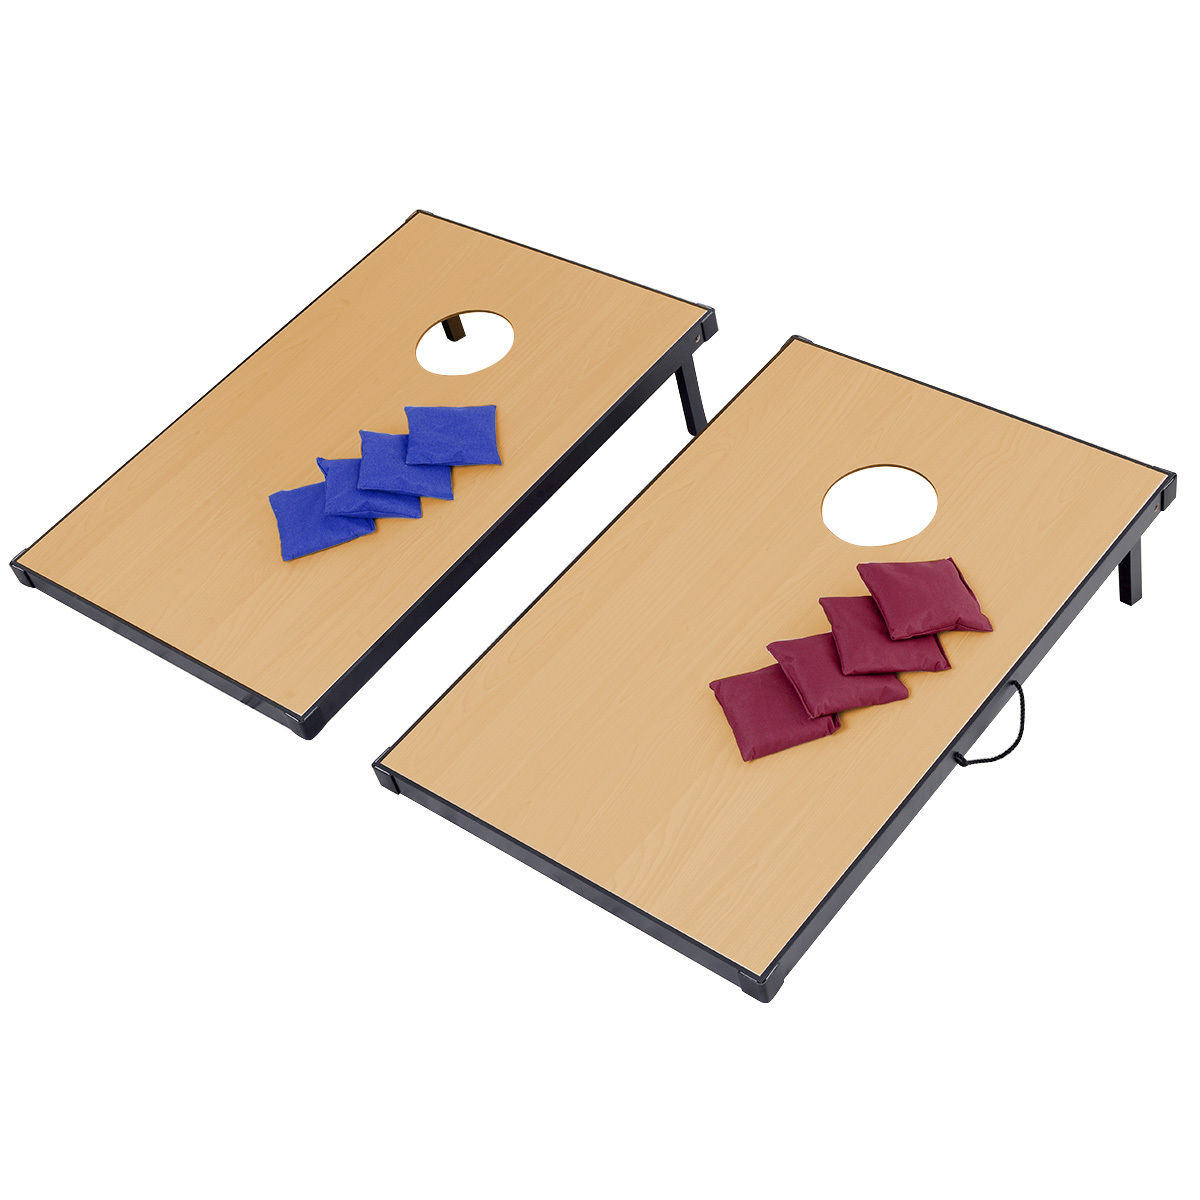 Gymax Foldable Wooden Beanbag Toss Cornhole Game Set Boards Tailgate by Gymax